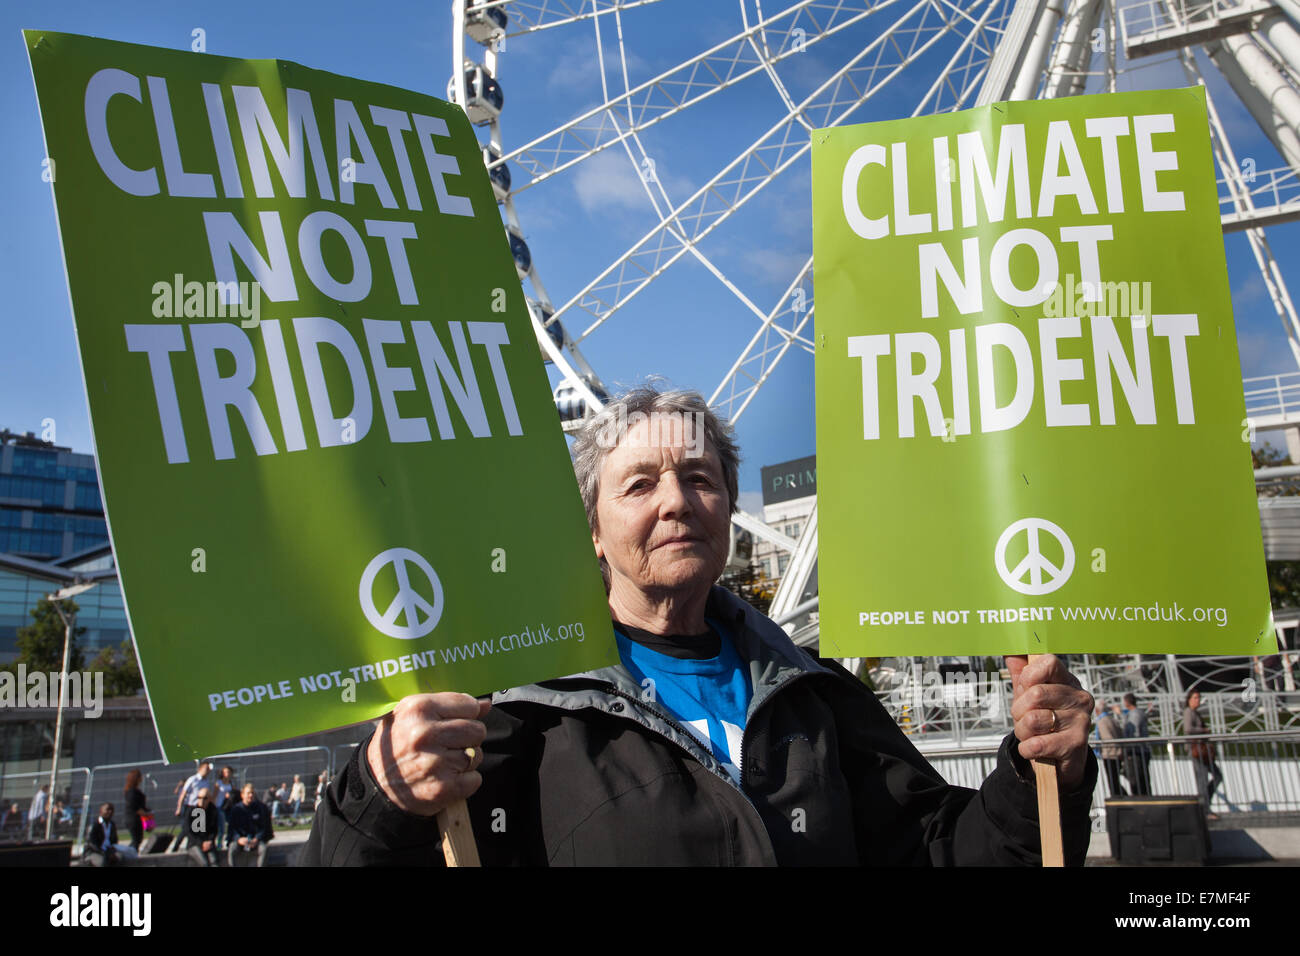 Manchester, UK  21st September, UK.  'Climate not Trident' poster held by Sheila Townsend 74, at the Frack Free Stock Photo